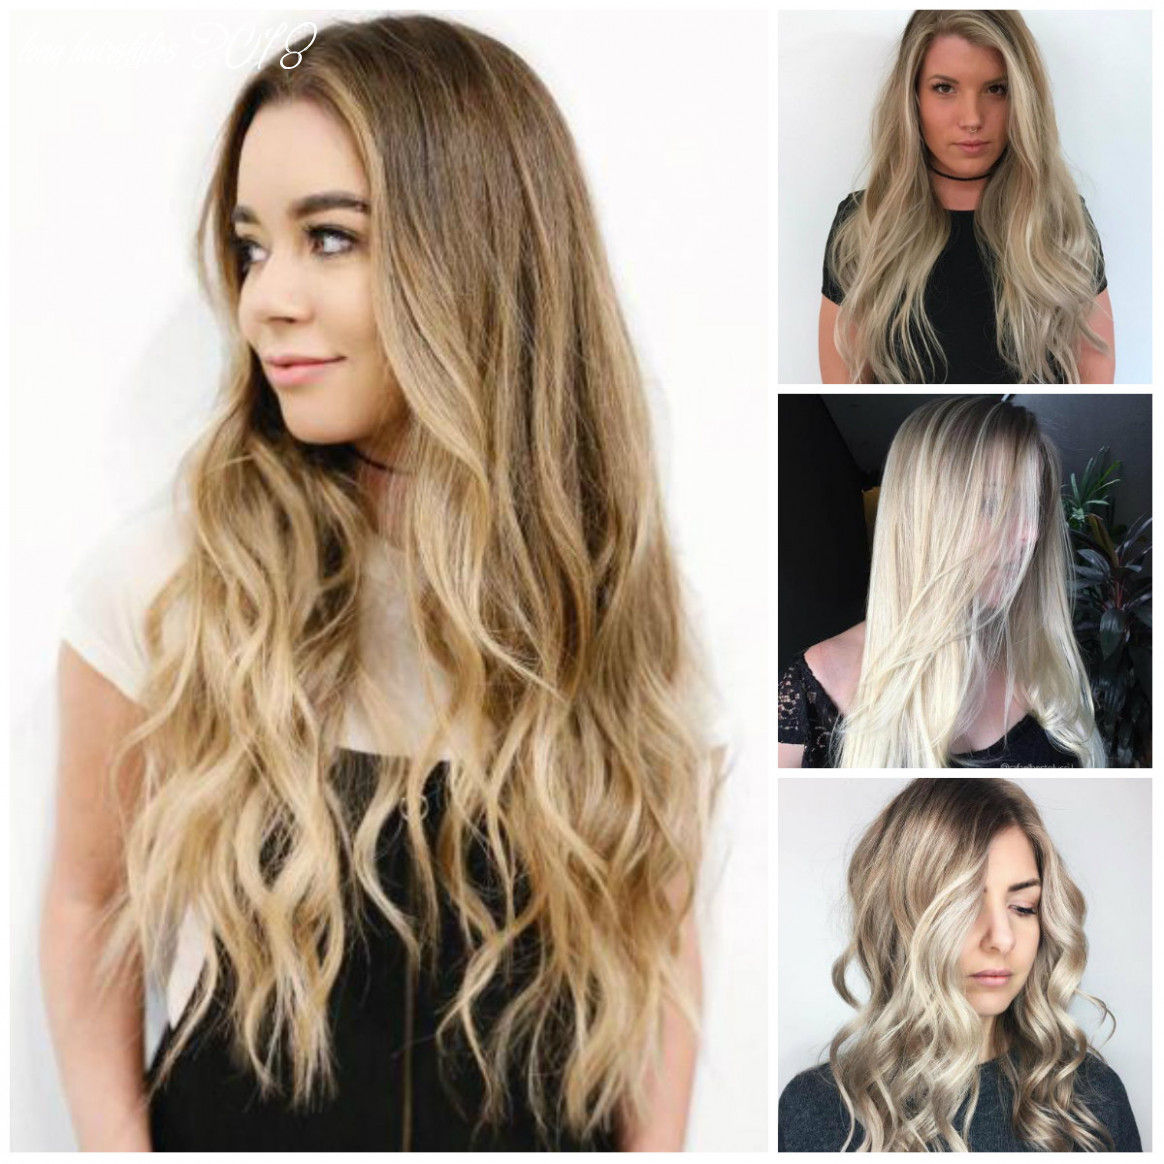 10/ 10 hairstyles for long blonde hair | 10 haircuts